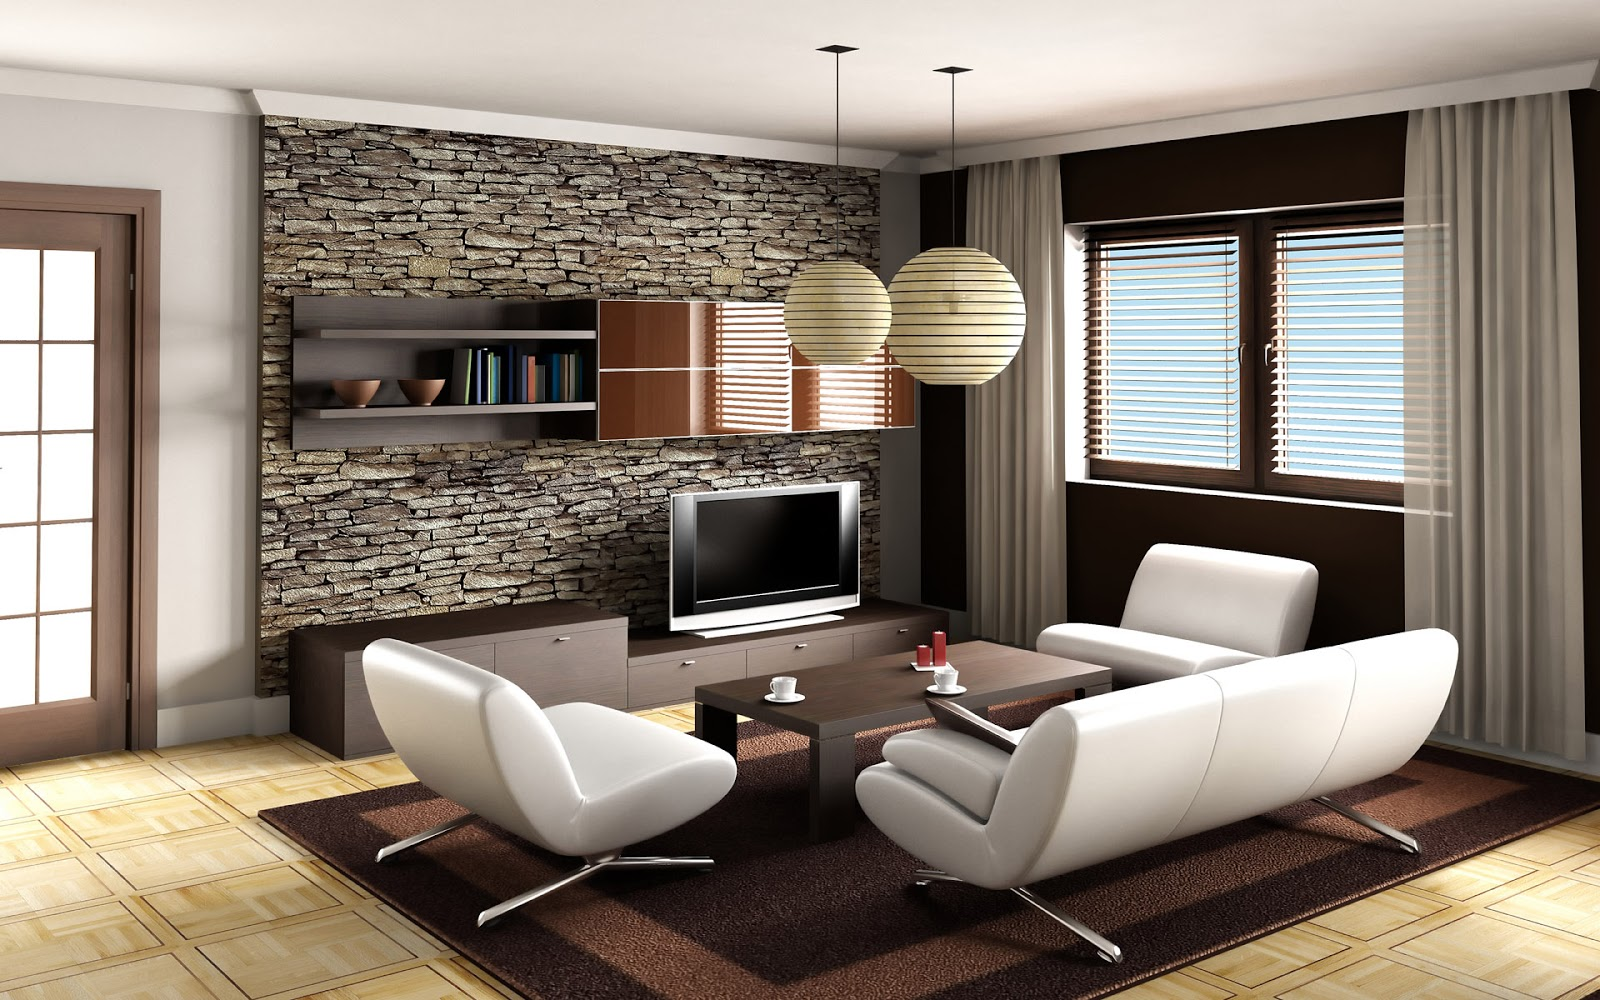 Arrangement of luxury living room ideas dream house Minimalist living room design ideas